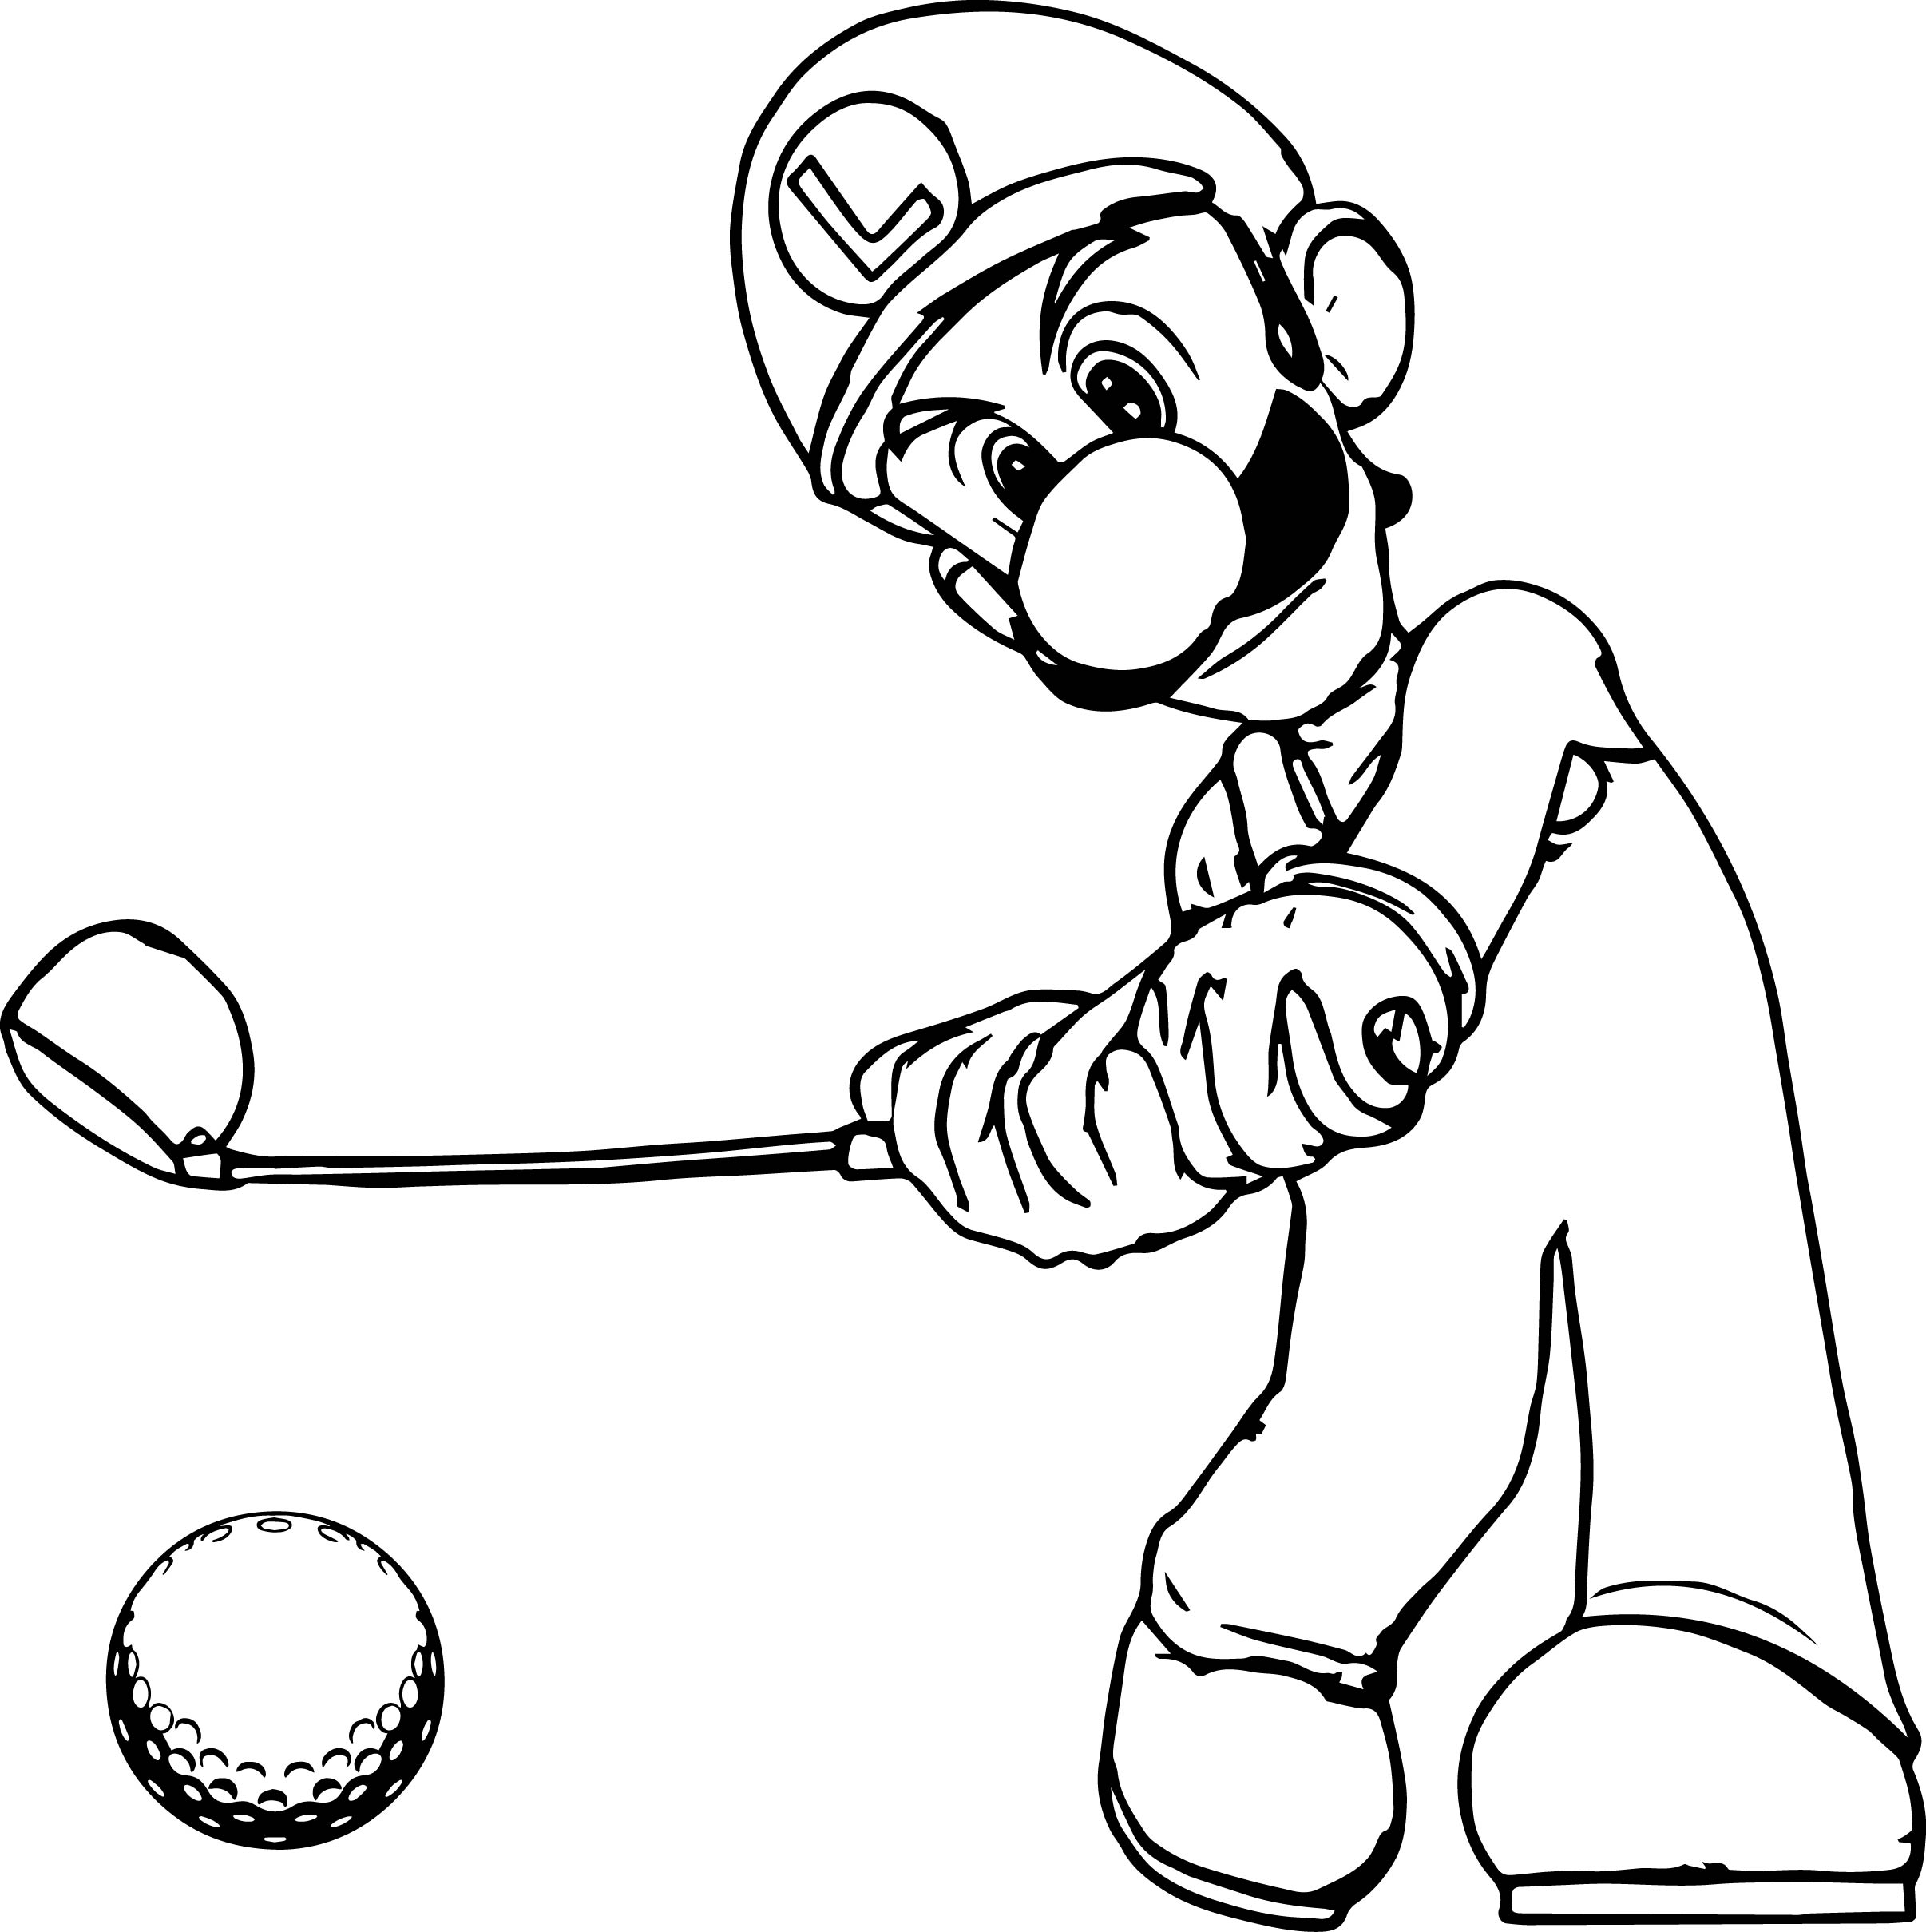 T ball coloring pages - Super Mario Luigi Golf Coloring Page